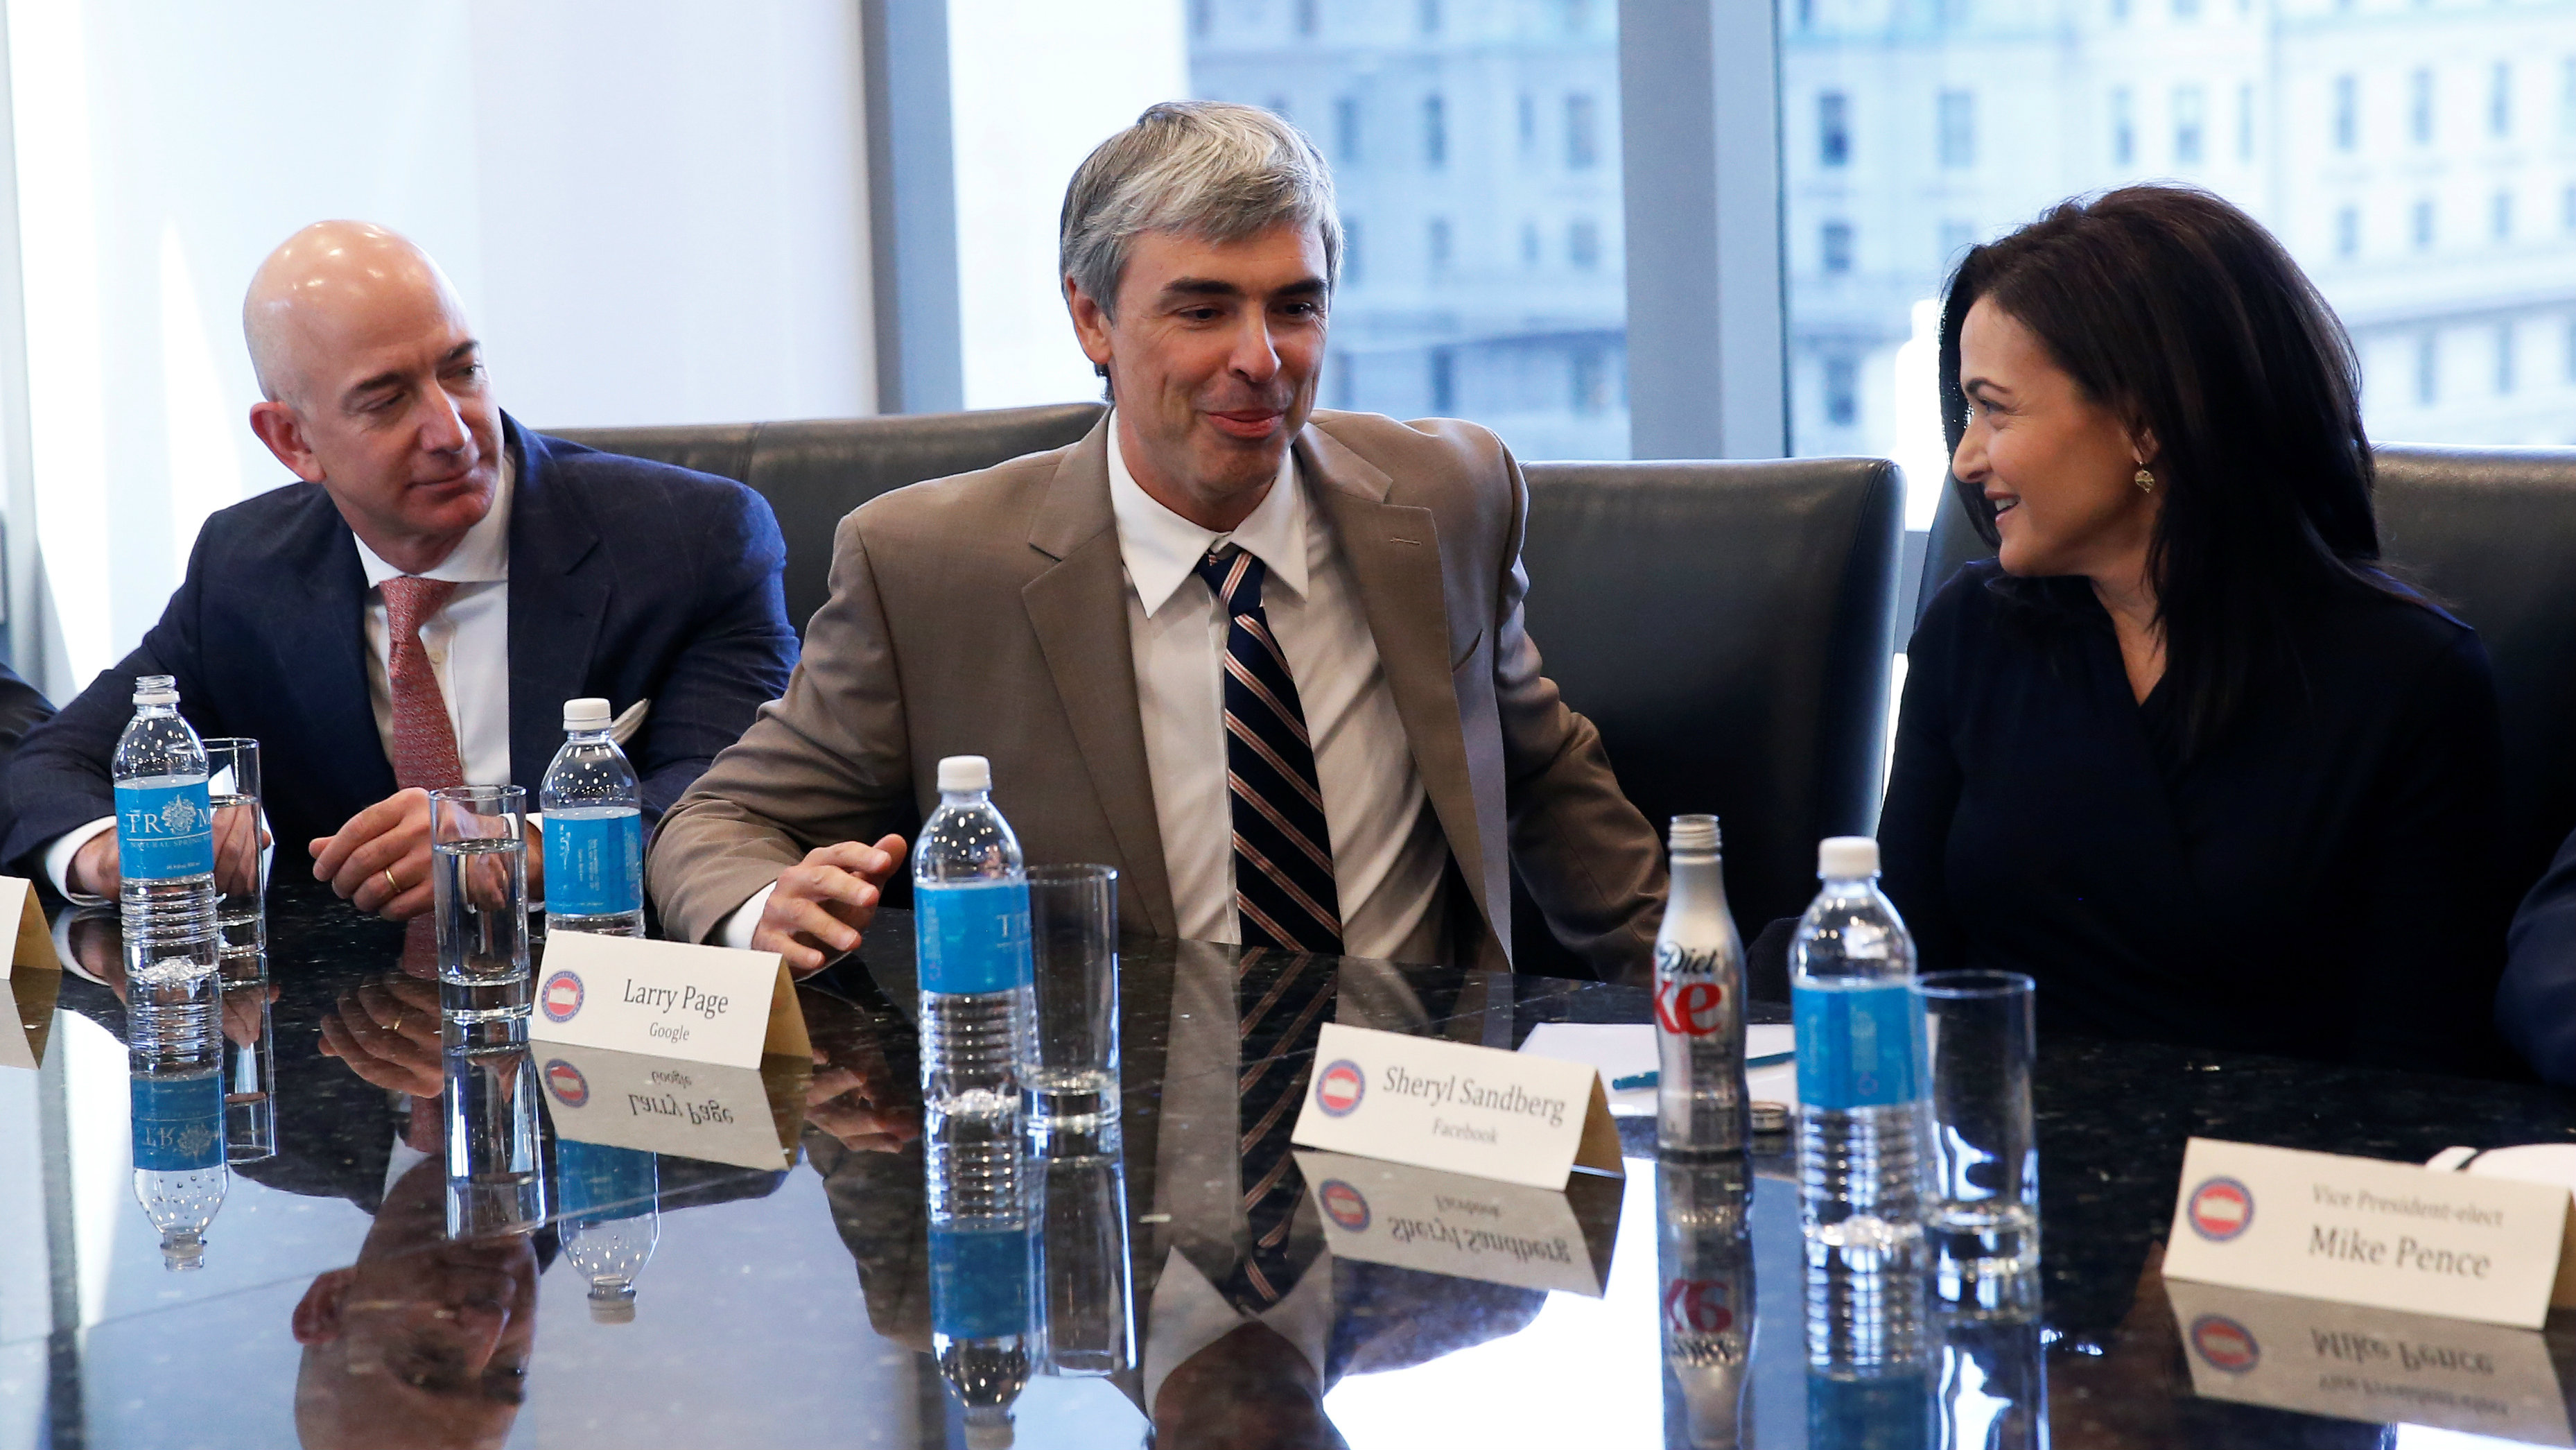 Larry Page (C), CEO and Co-founder of Alphabet, speaks while Sheryl Sandberg, Chief Operating Officer of Facebook (R), and Amazon CEO Jeff Bezos look on during a meeting with U.S. President-elect Donald Trump and technology leaders at Trump Tower in New York U.S., December 14, 2016.